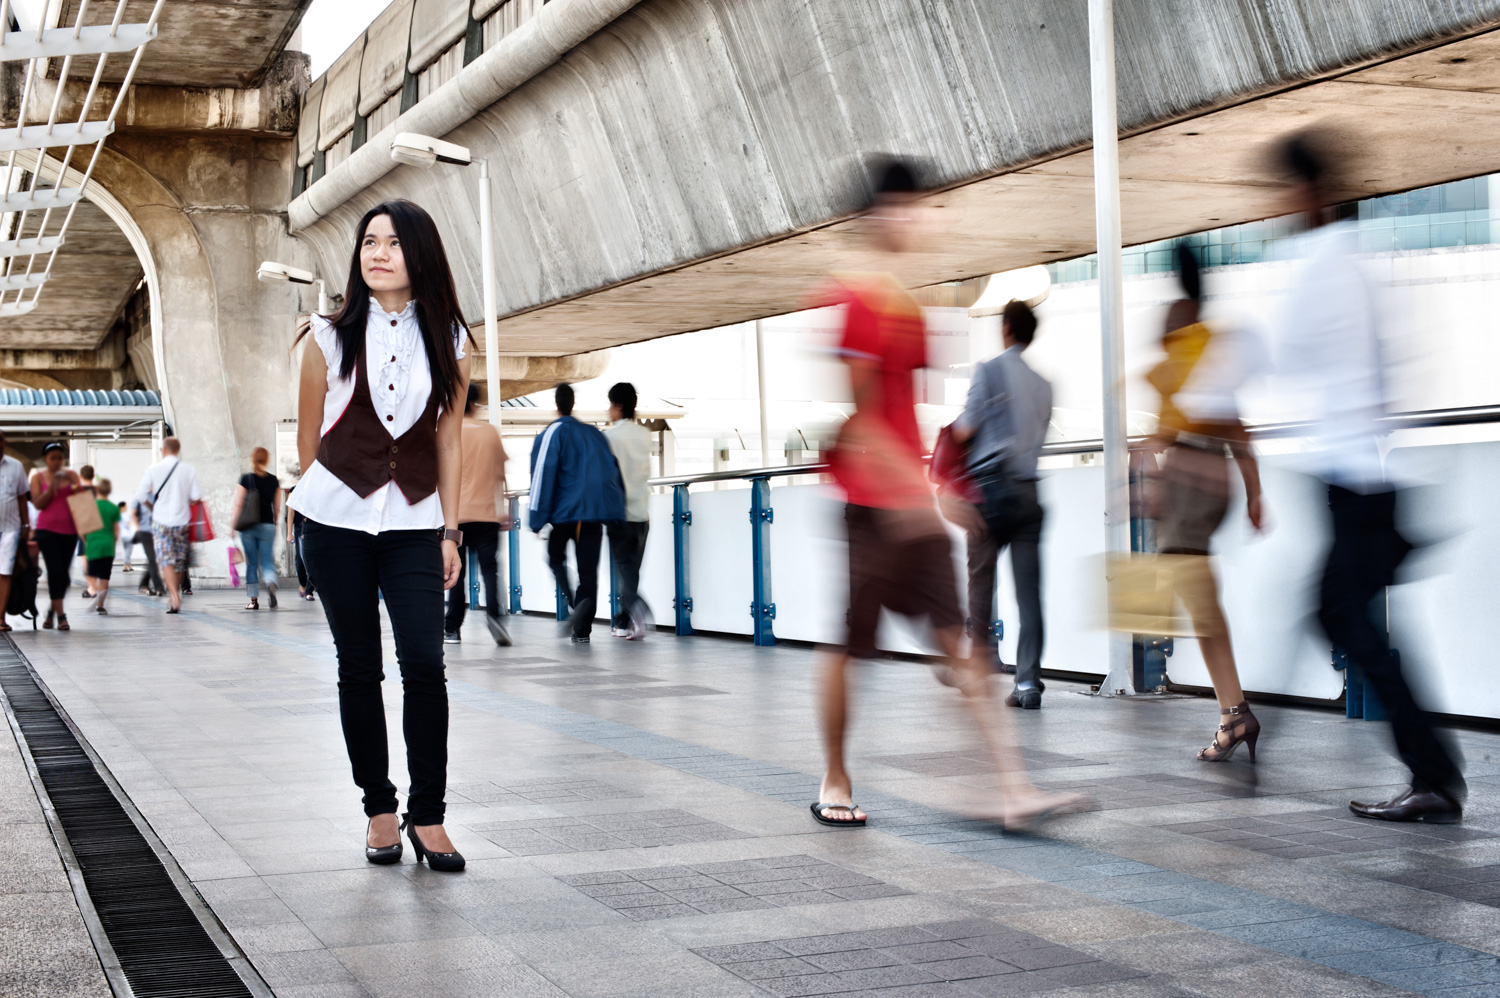 Asian woman on a city walkway with motion blur - common camera mistakes